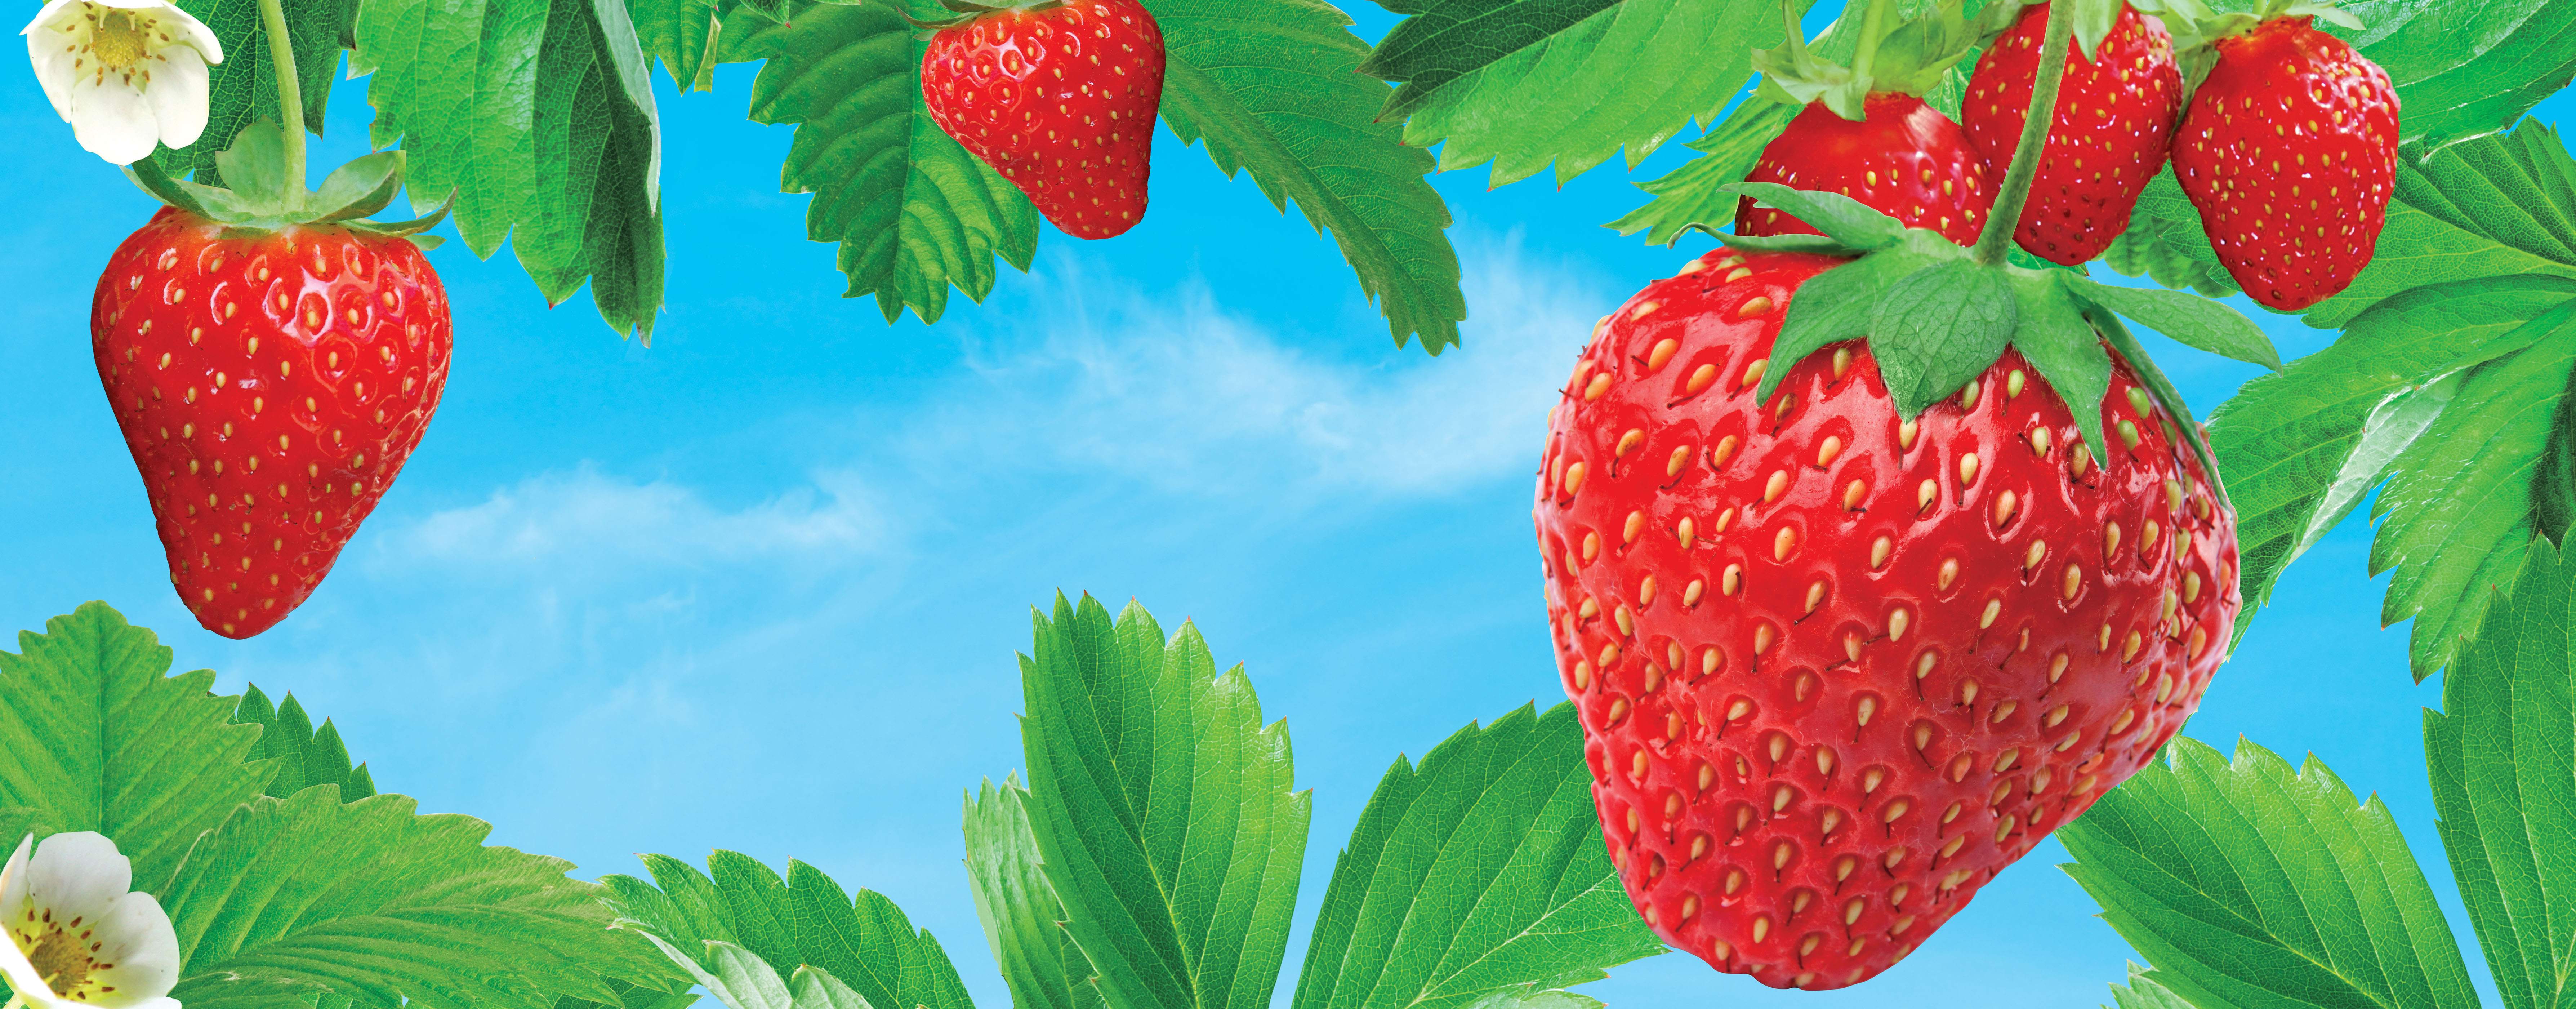 Strawberries hanging from a vine